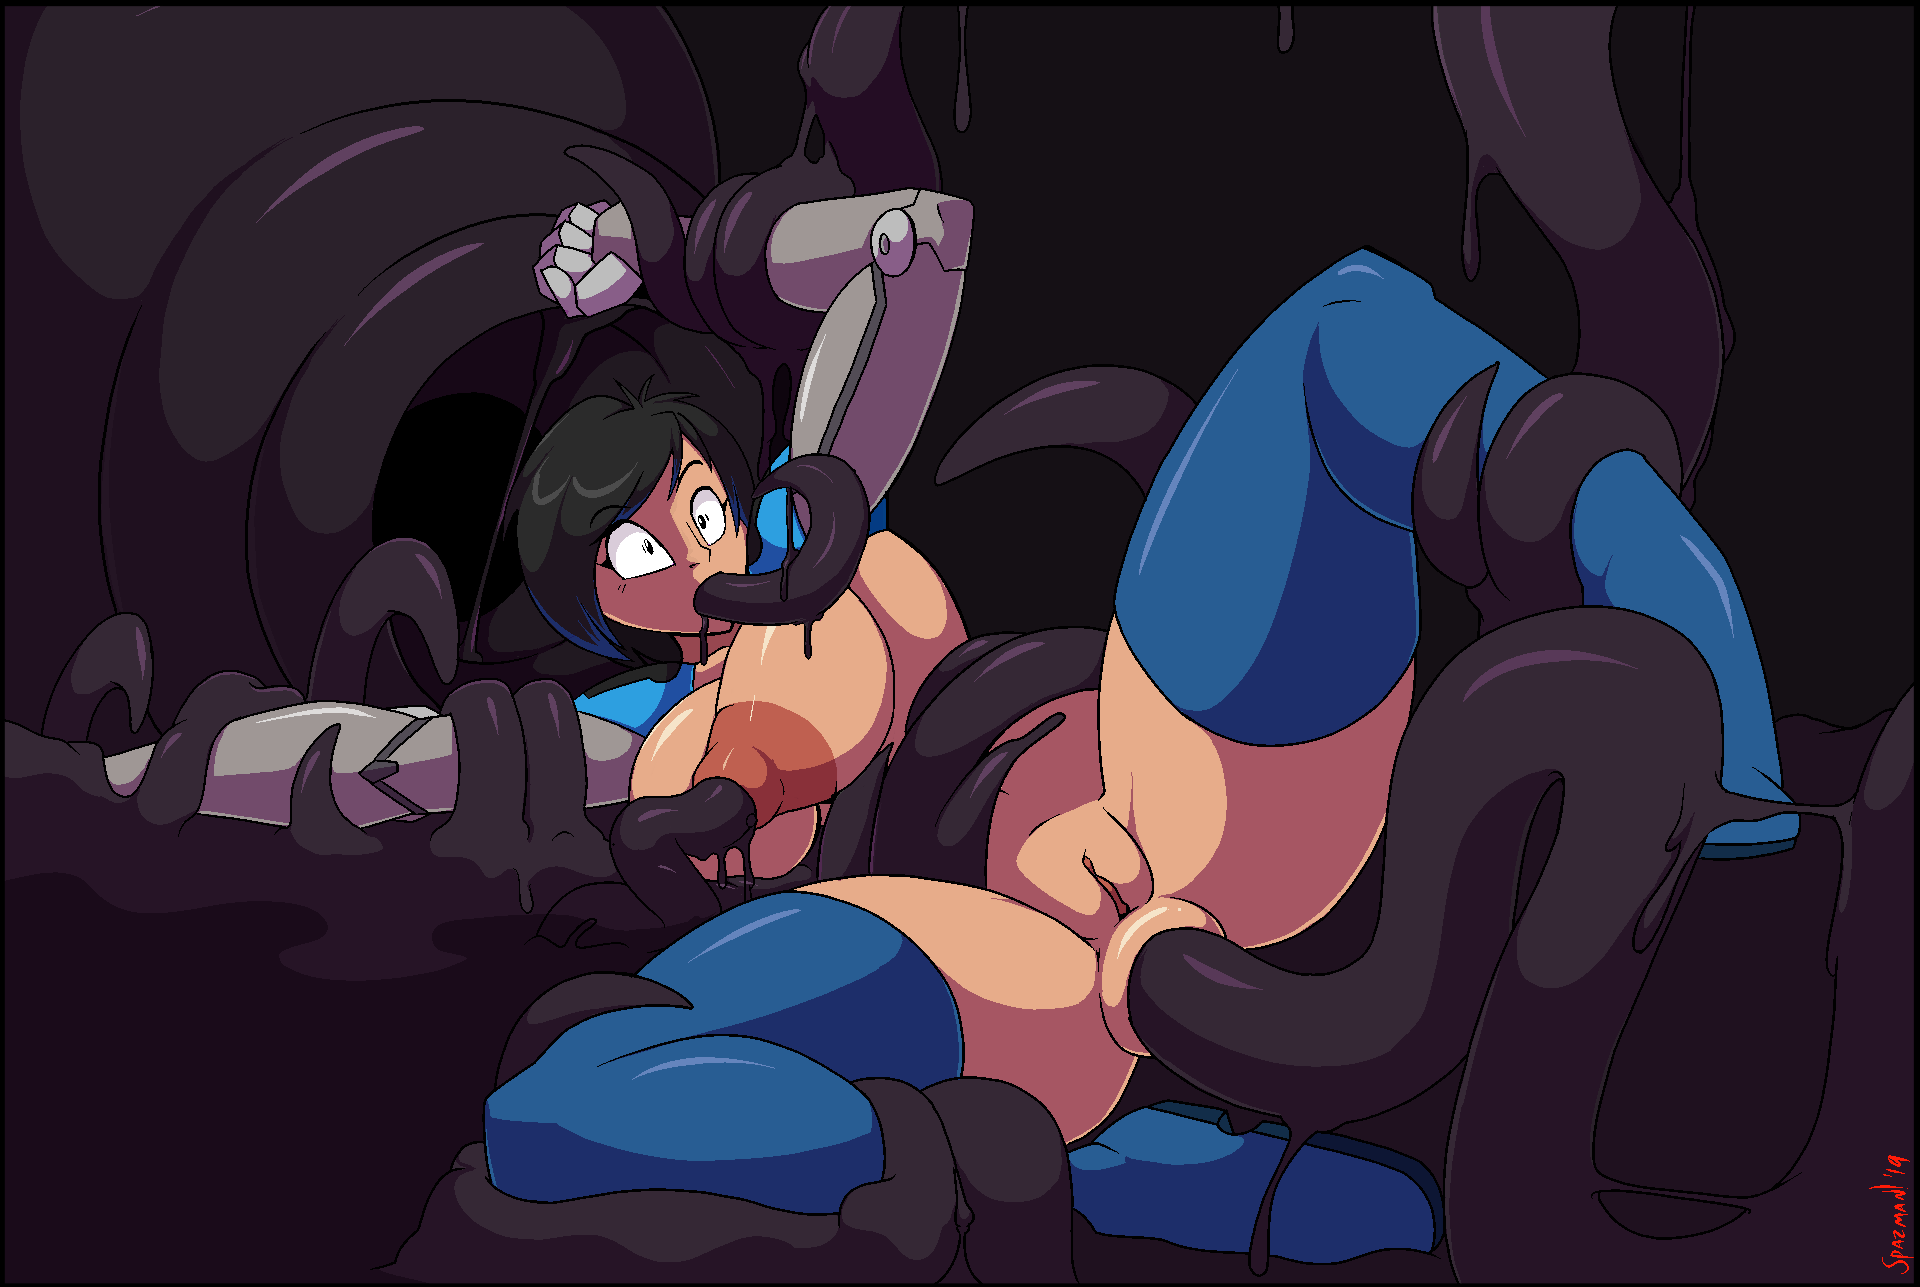 way all through tentacle the 5 nights at freddy's girl